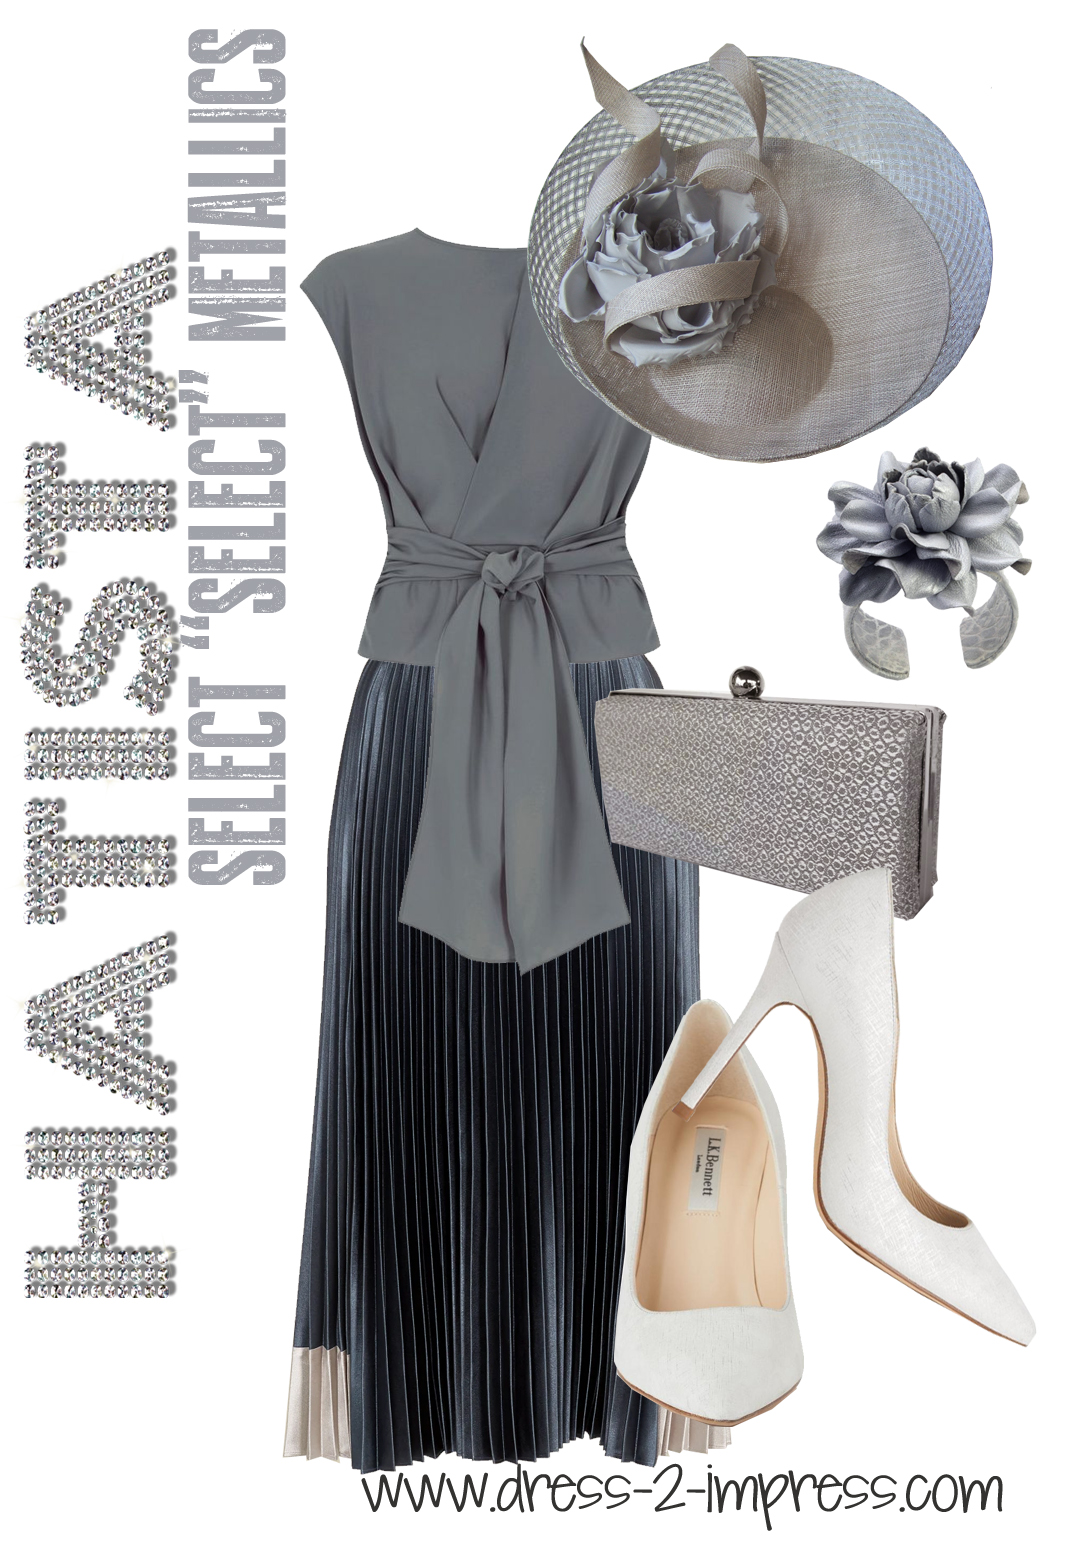 How to Wear Silver for Daywear - What to wear to Royal Ascot. What to wear for the Kentucky Derby. What to wear to the Races. Ted Baker Pleated Midi Skirt 2020. Philip Treacy Hats. Mother of the Bride hats. How to wear the Metallics trend. Tips on Wearing Metallics #fashion #metallics #philiptreacy